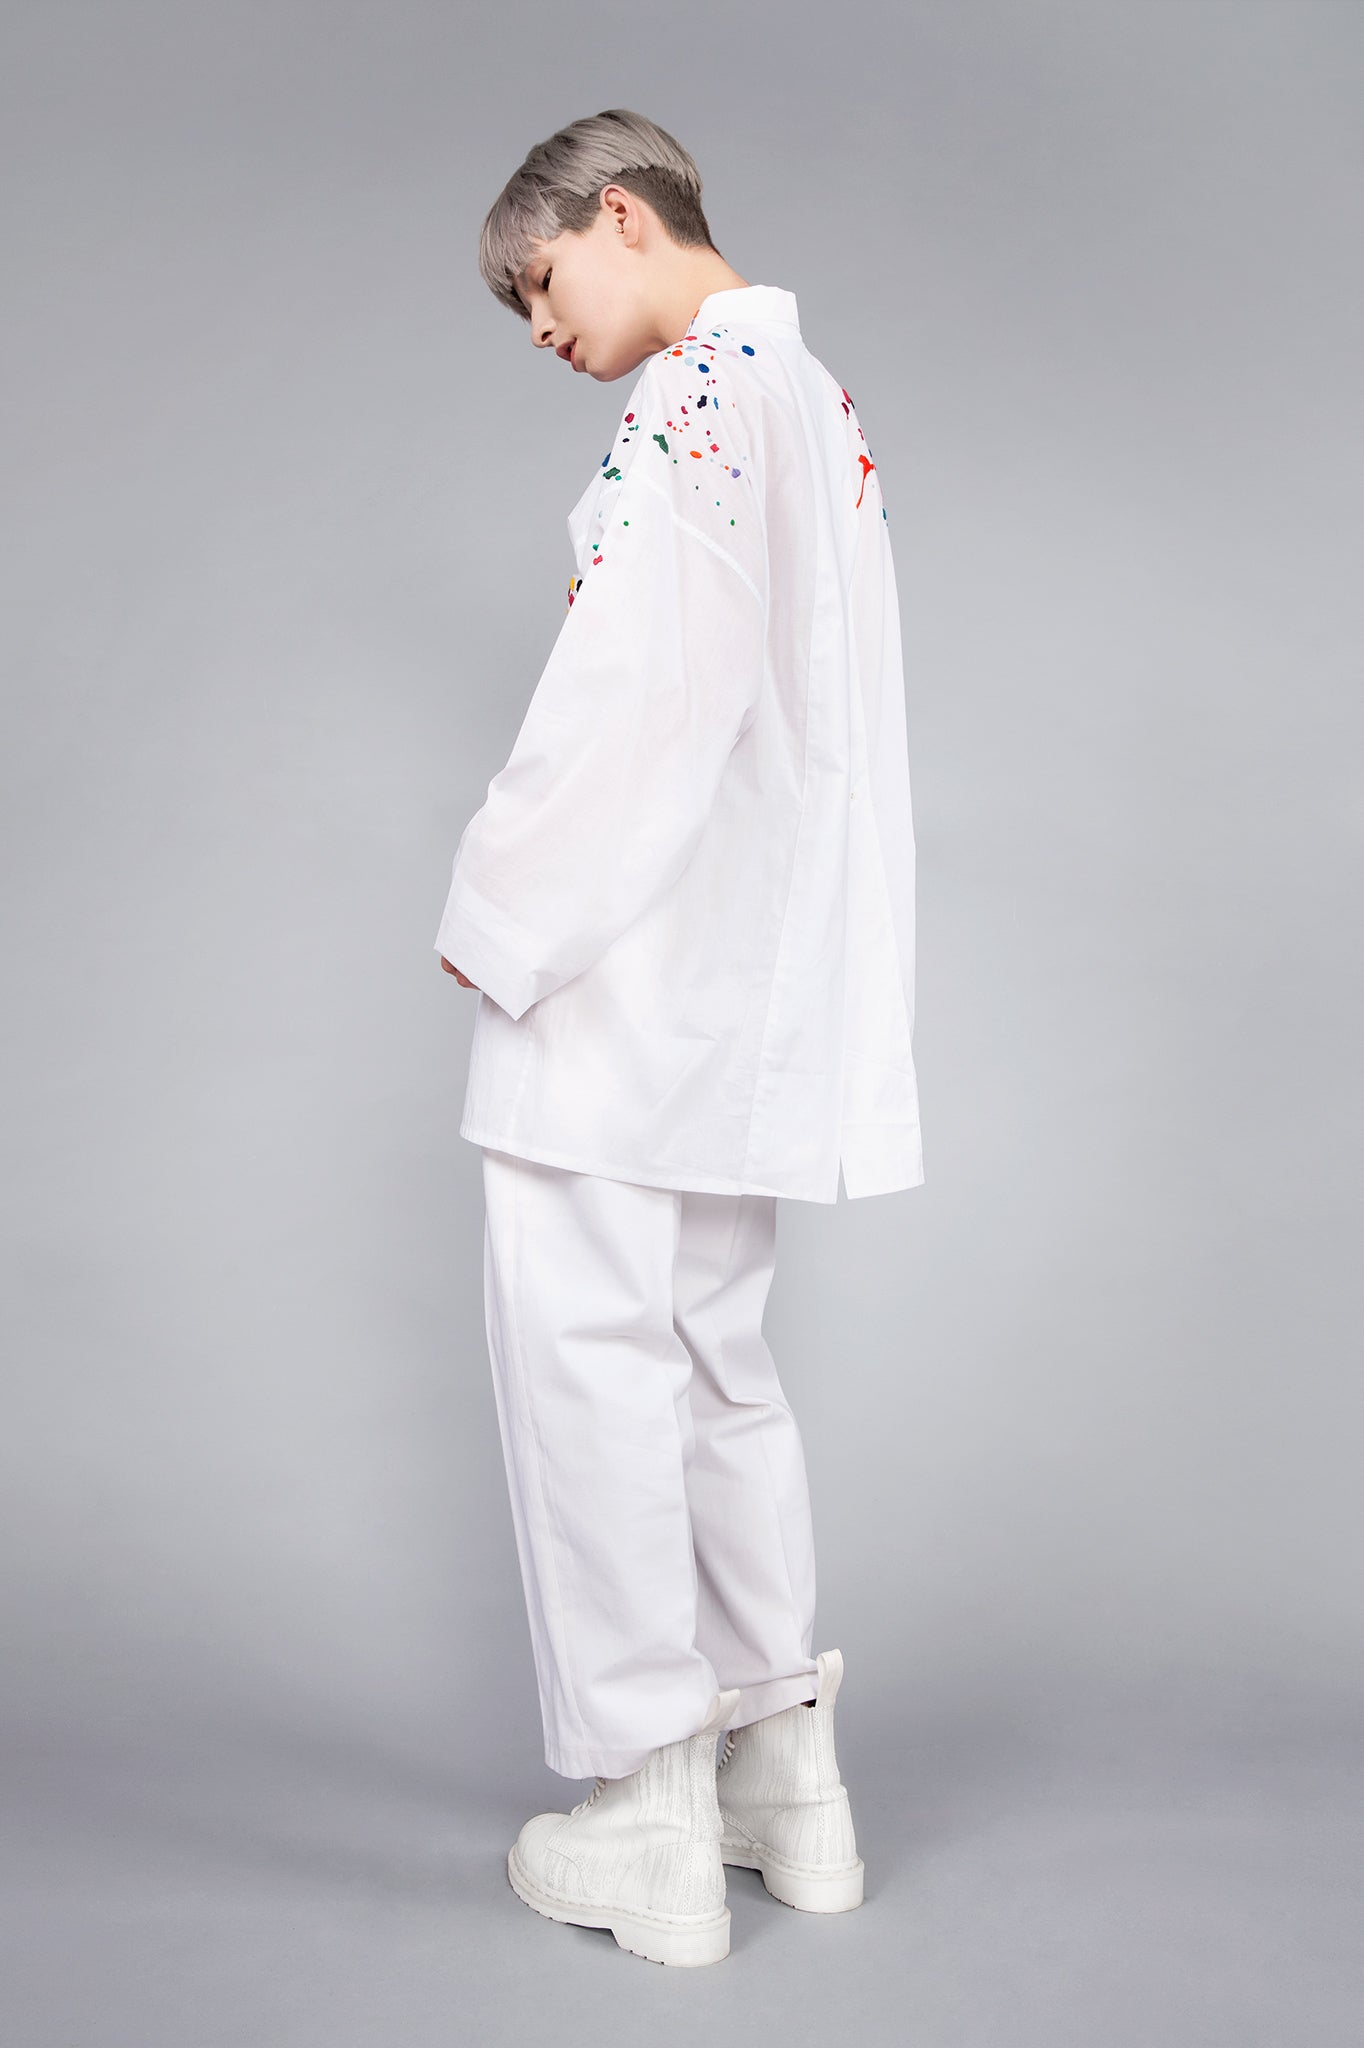 Colourful embroidered paint splashes on crisp white cotton 'cleave' shirt with a split back - from emerging brand CIMONE. Embellishments and overall look at echoed by Oscar de la Renta one year later in SS18 - be ahead of the trends and support new brands!